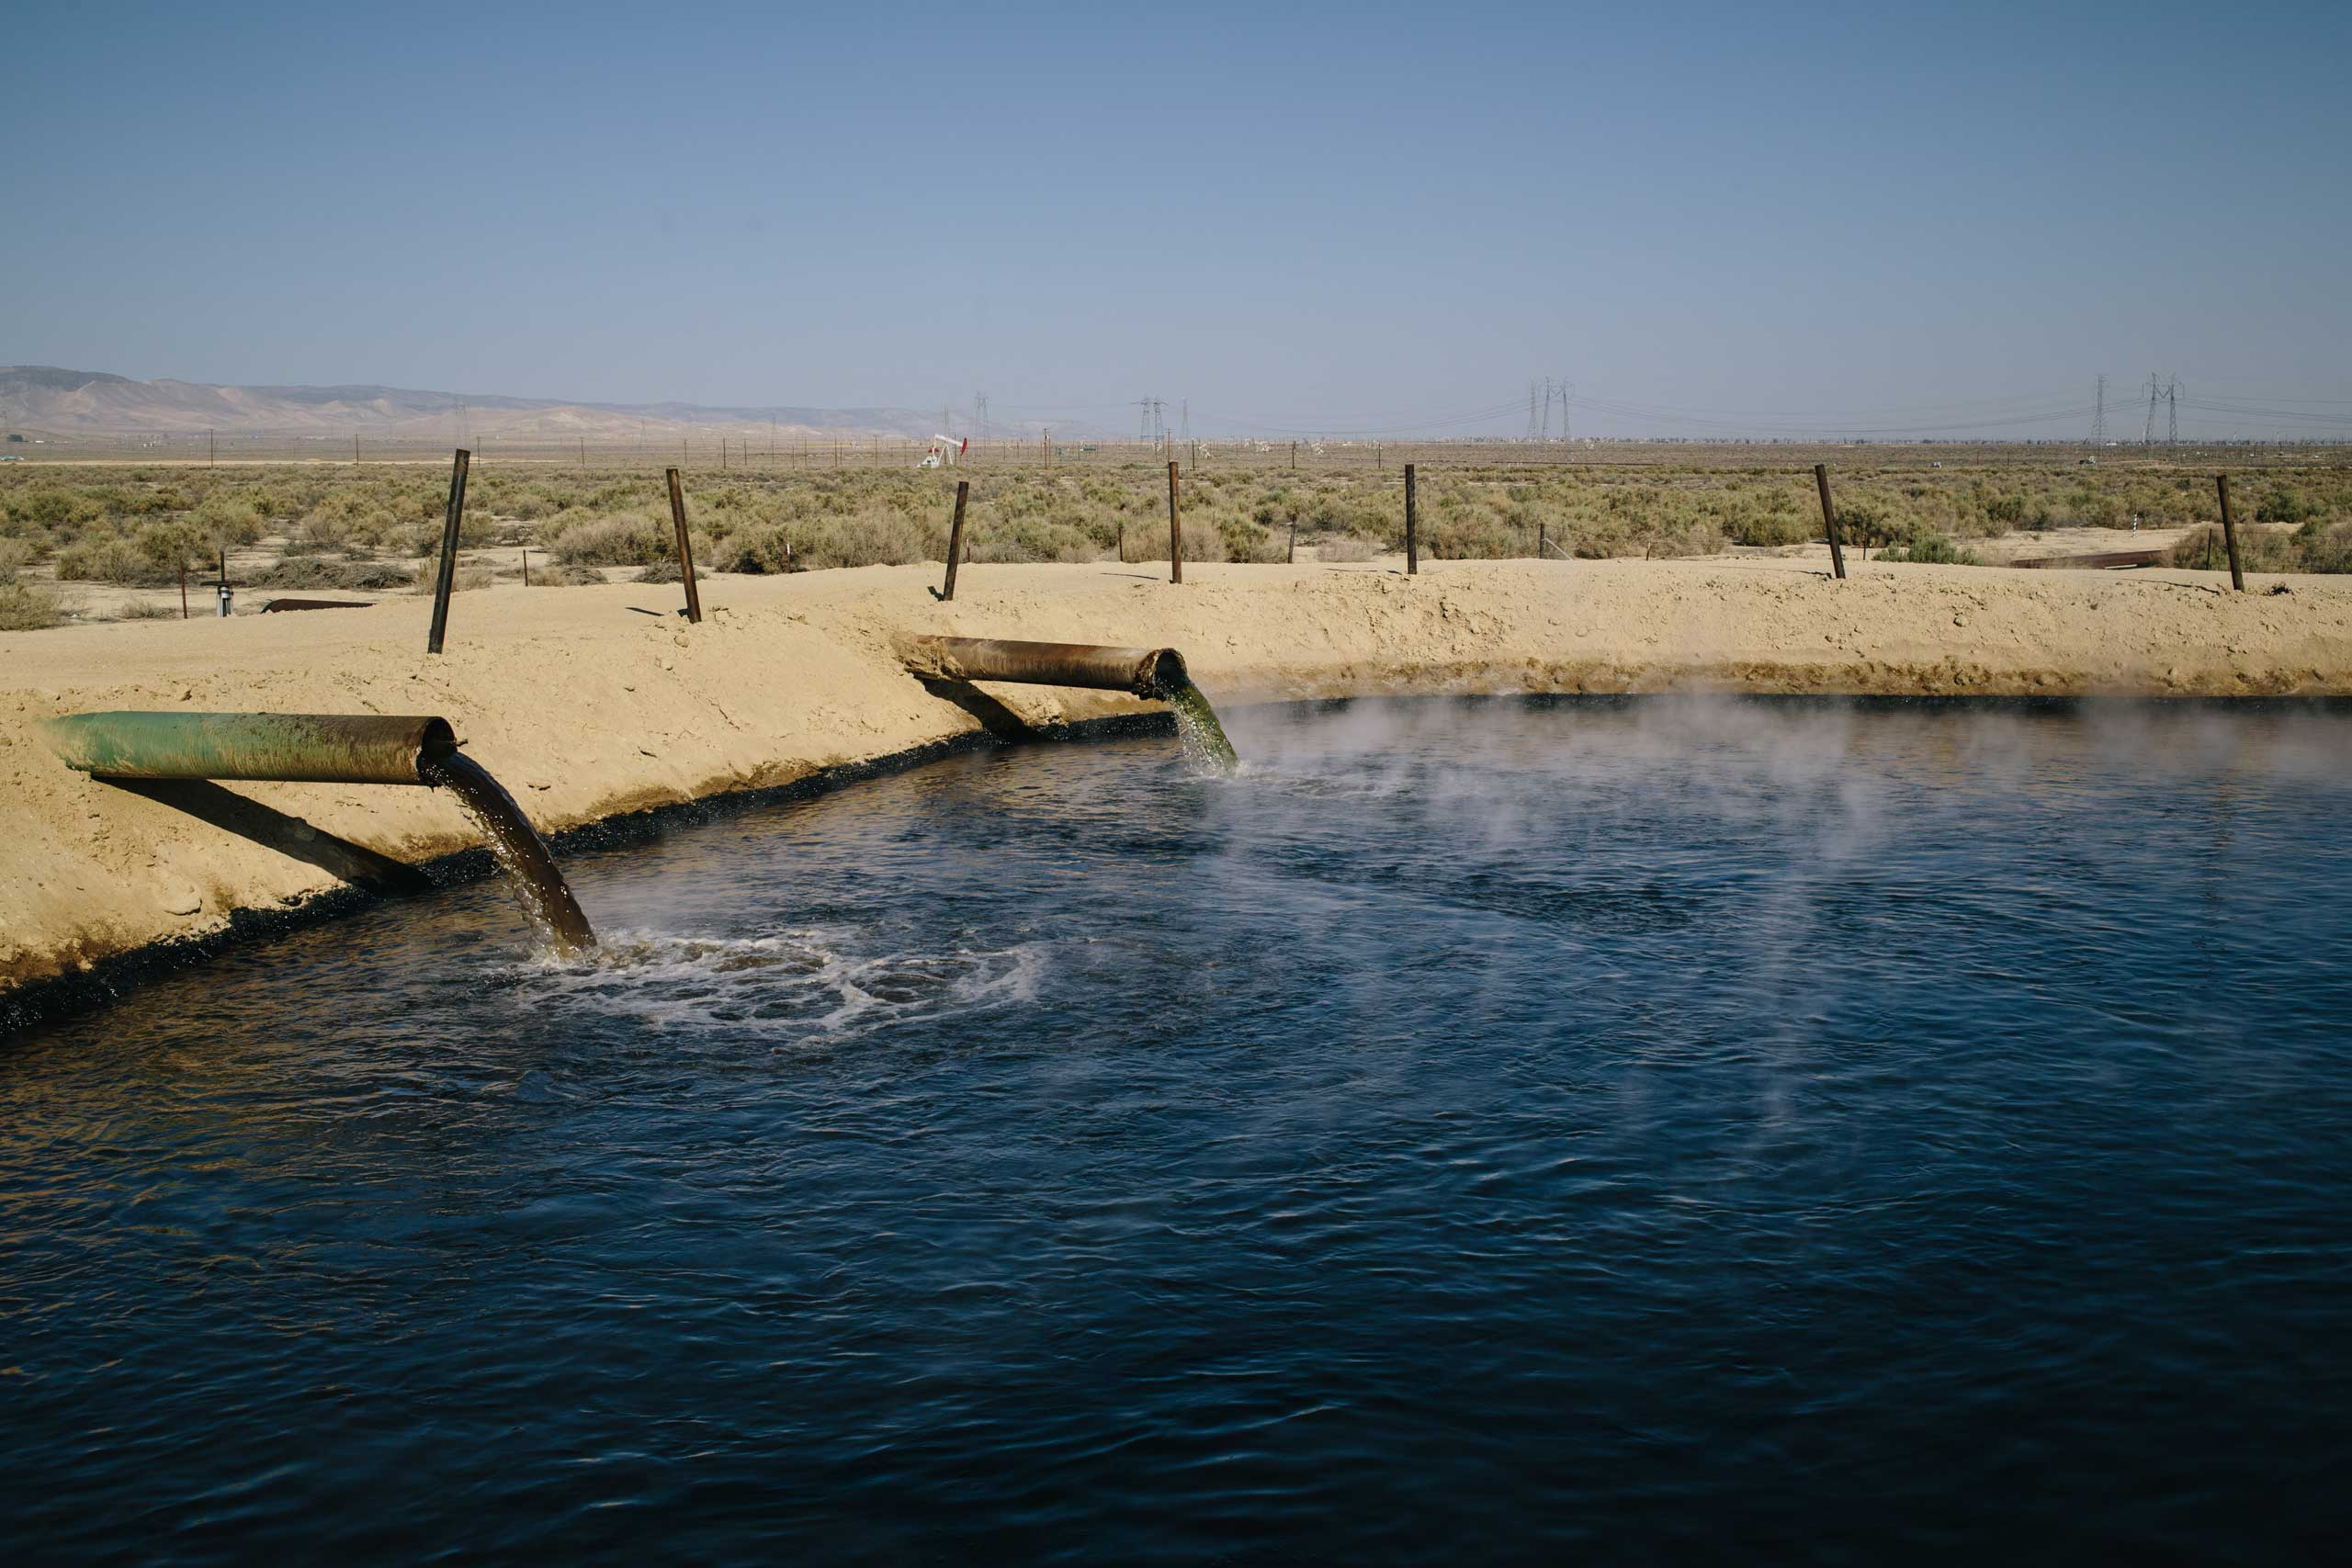 Percolation ponds fill up with runoff water from nearby Belridge Oil Fields in Eastern Kern County. As the water evaporates, leaving oil residue, hydrogen sulfide, methane and volatile organic compounds, or VOCs, are released in to the air.